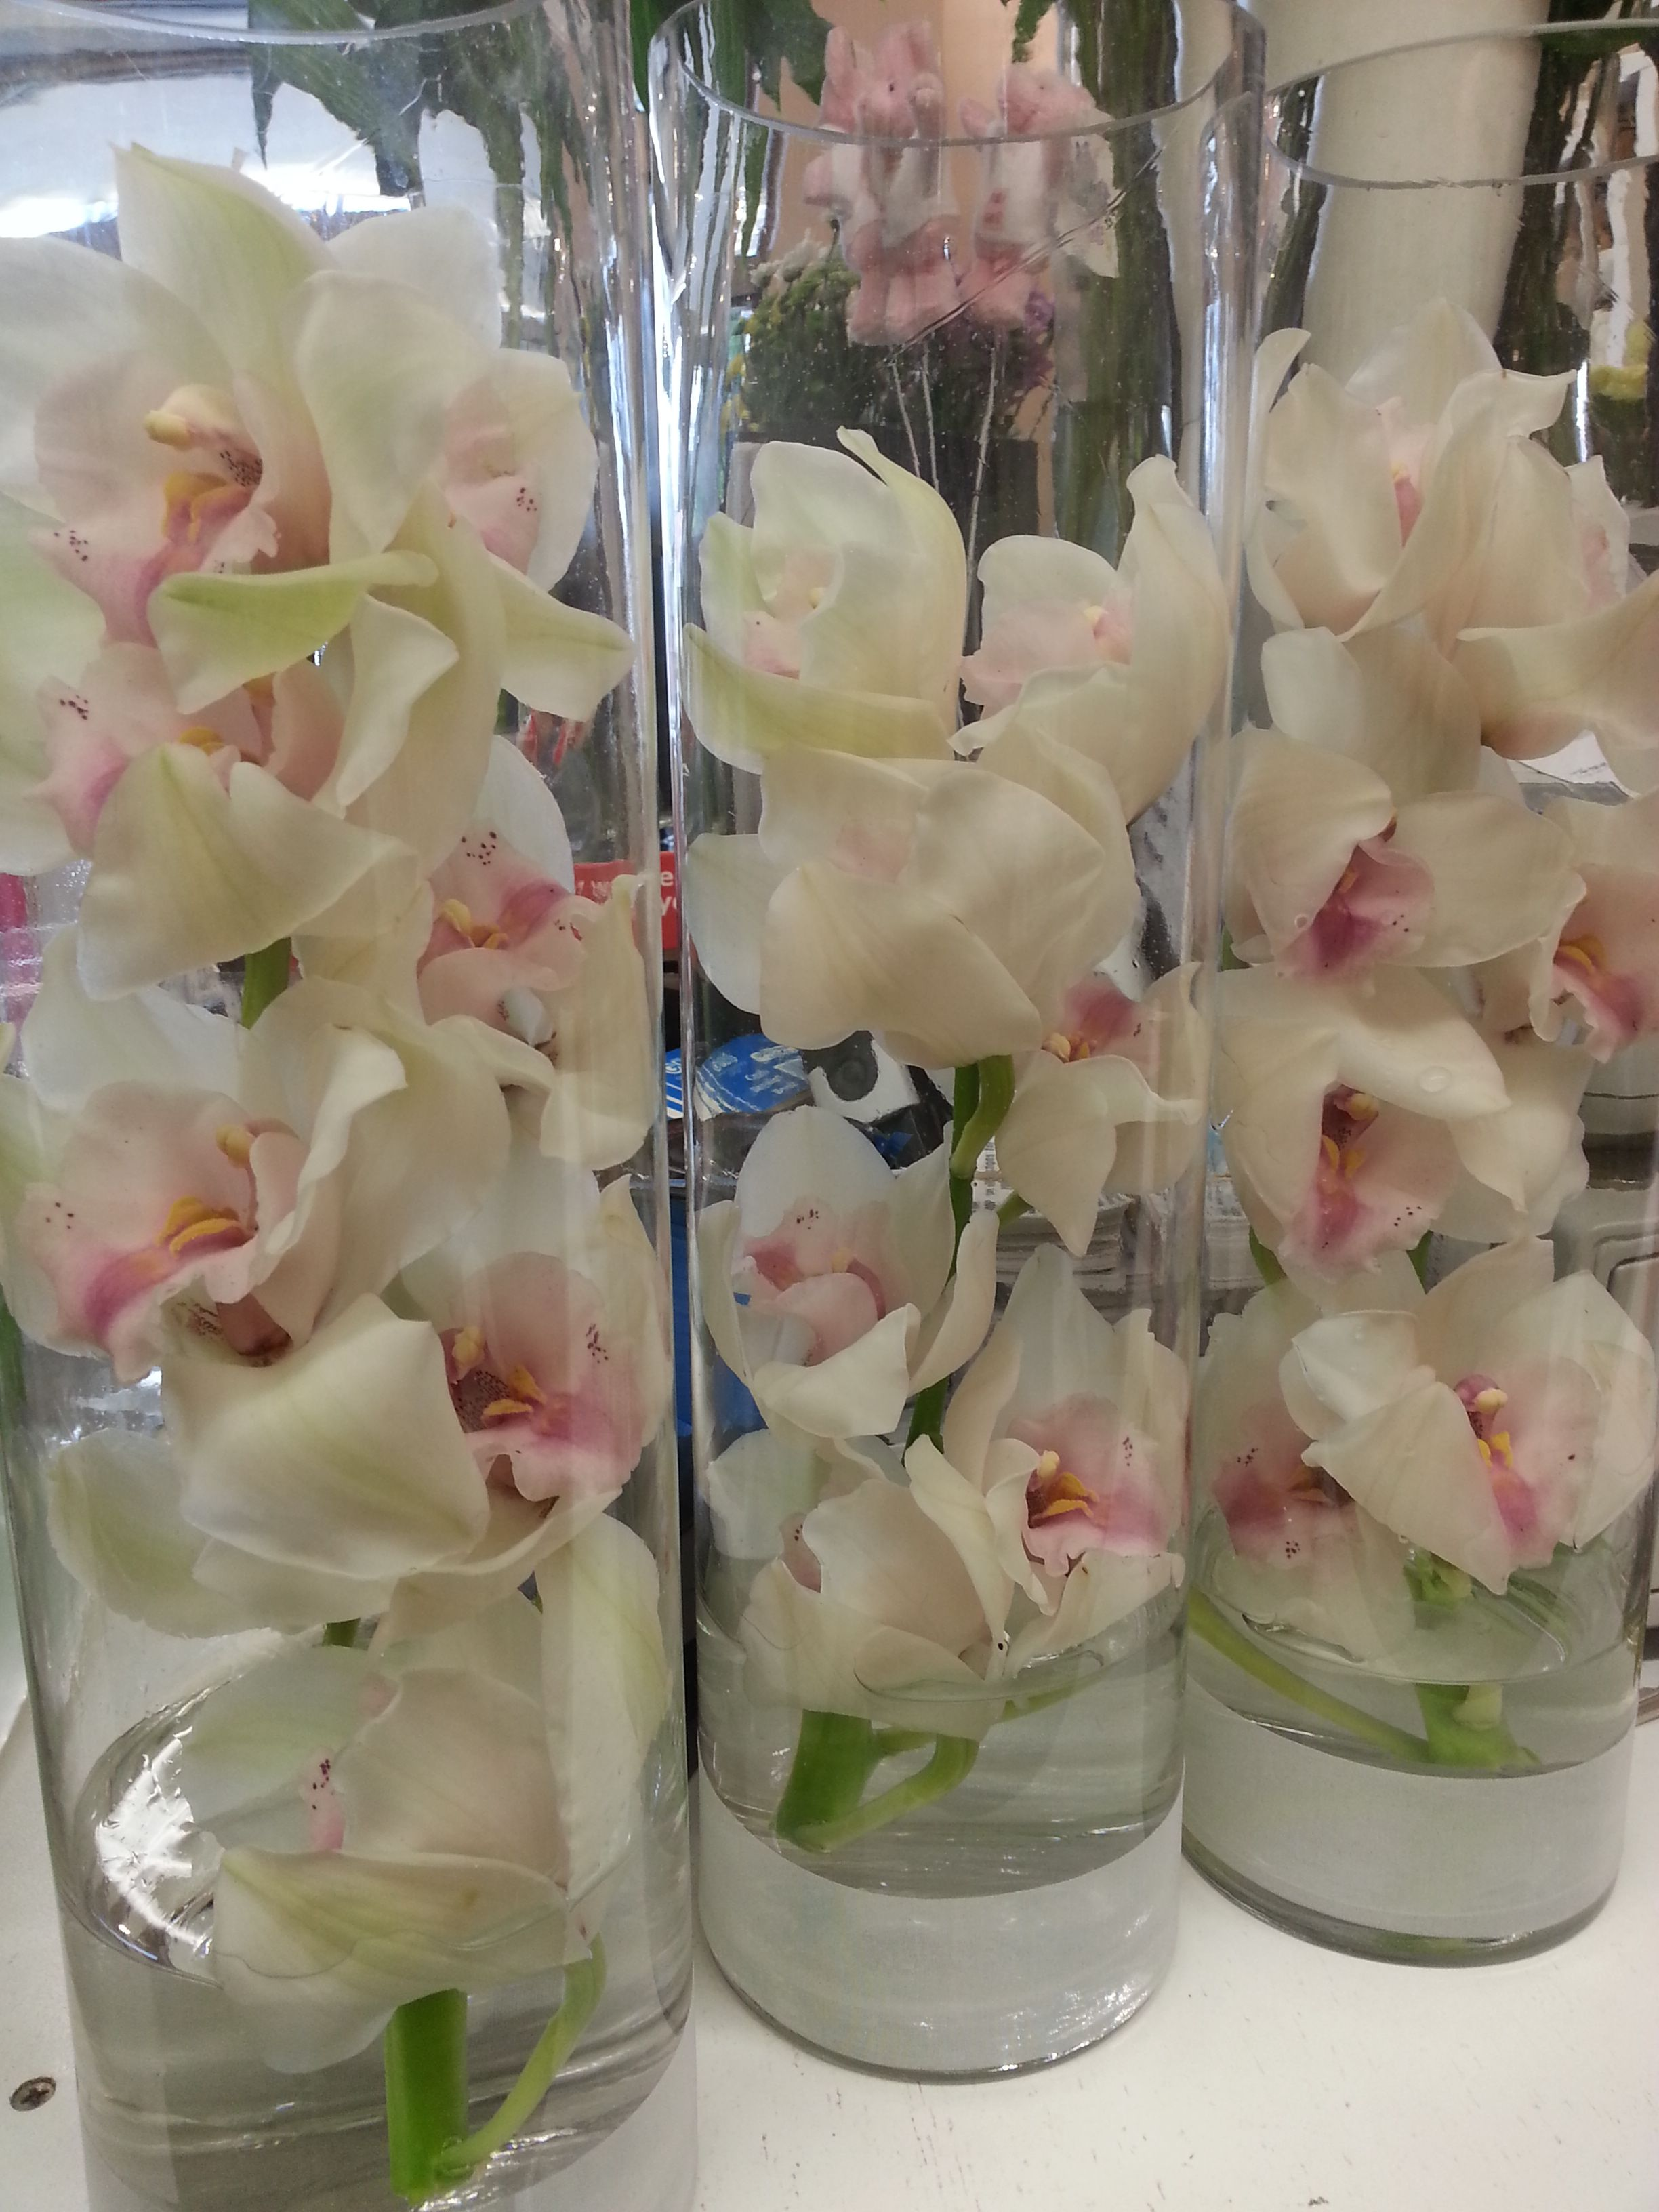 Cymbidium Orchids In A Tall Vase Vase Crafts Glass Vase Large White Vase